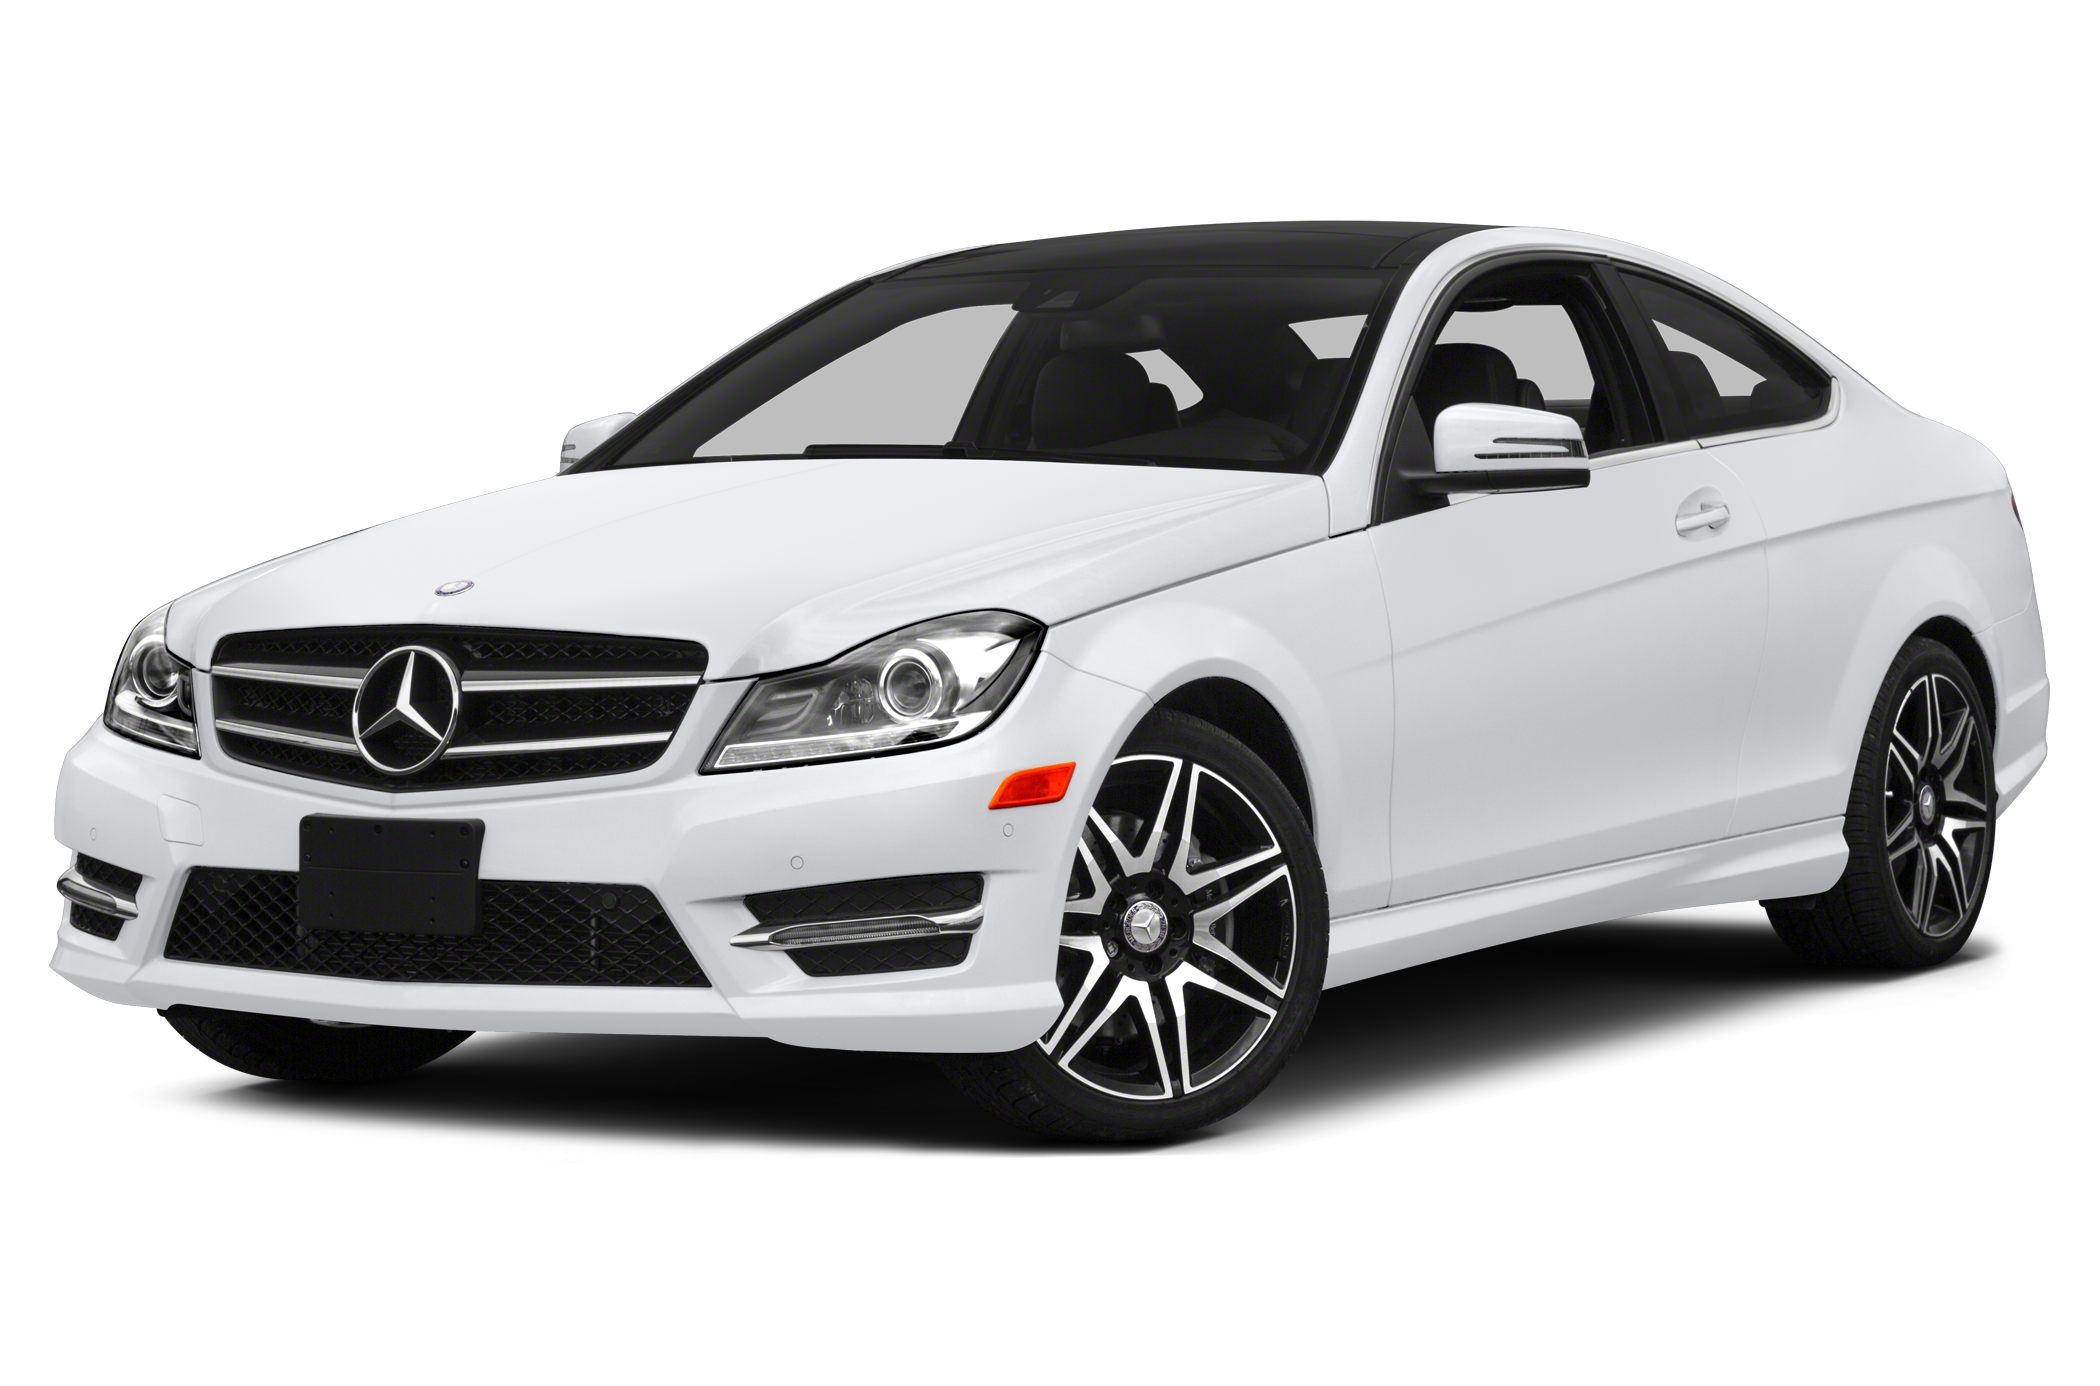 2015 Mercedes-Benz C-Class C300 4MATIC Sport Sedan for sale in Newport Beach for $49,185 with 5 miles.